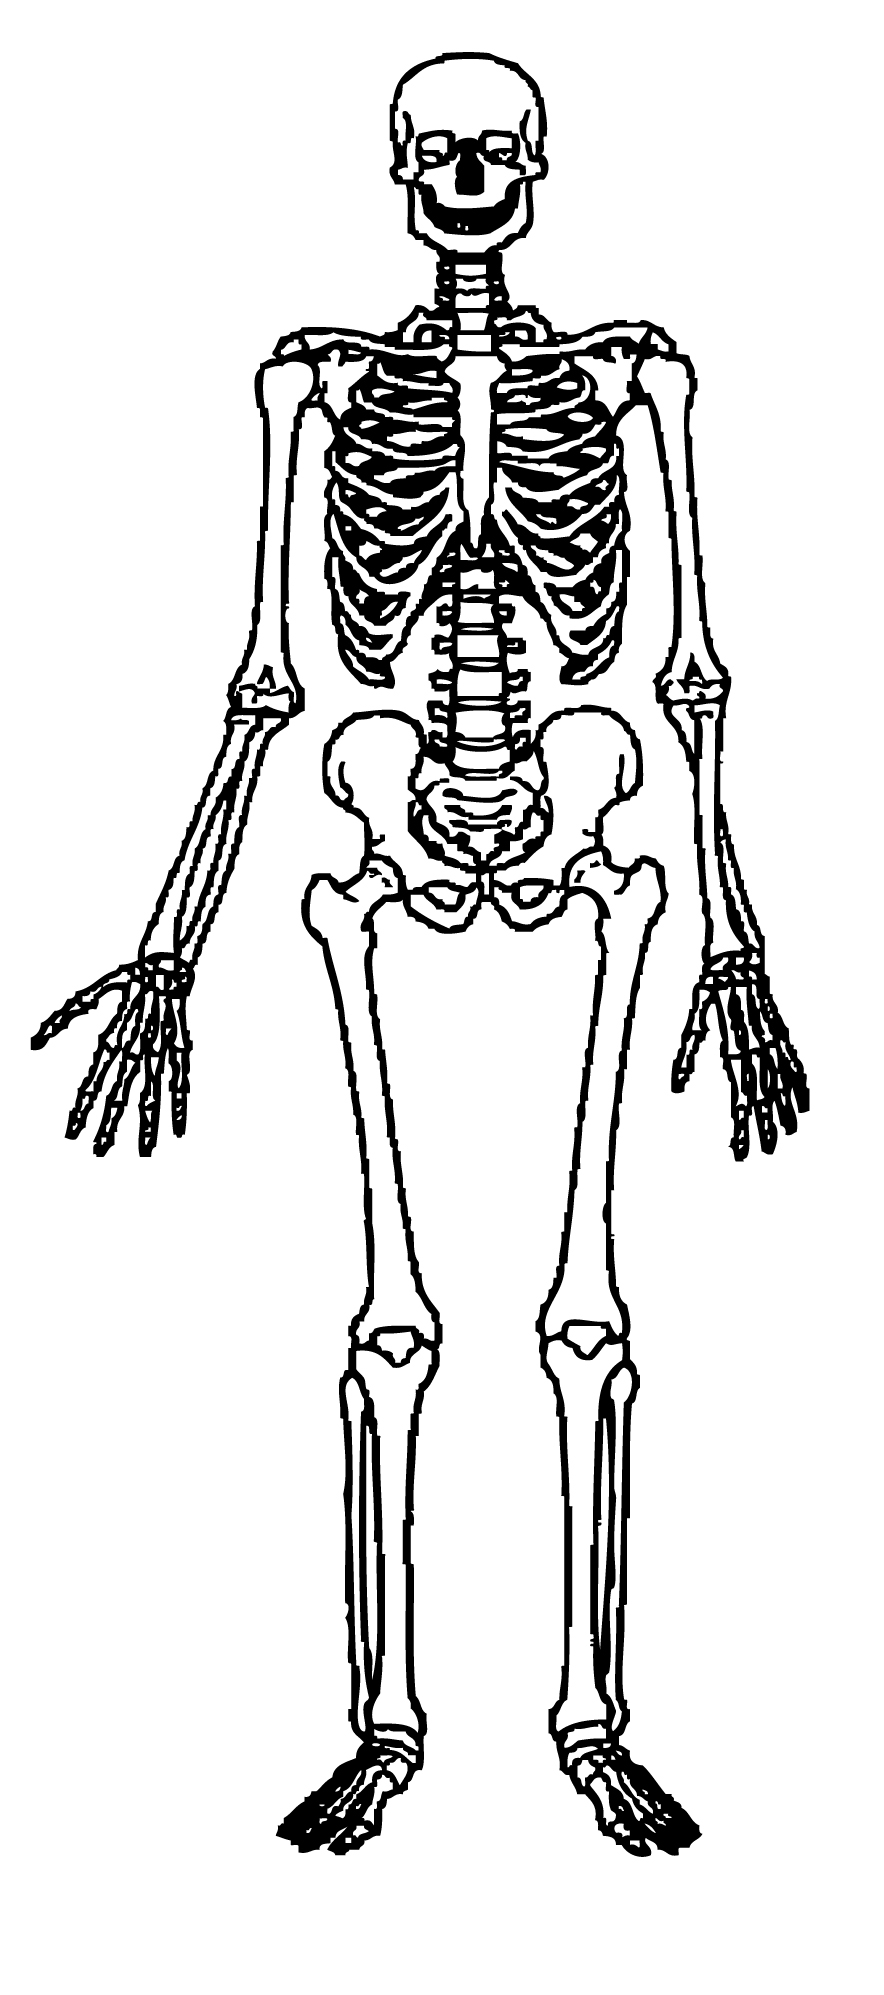 Skeleton clipart free download clip art on 4.